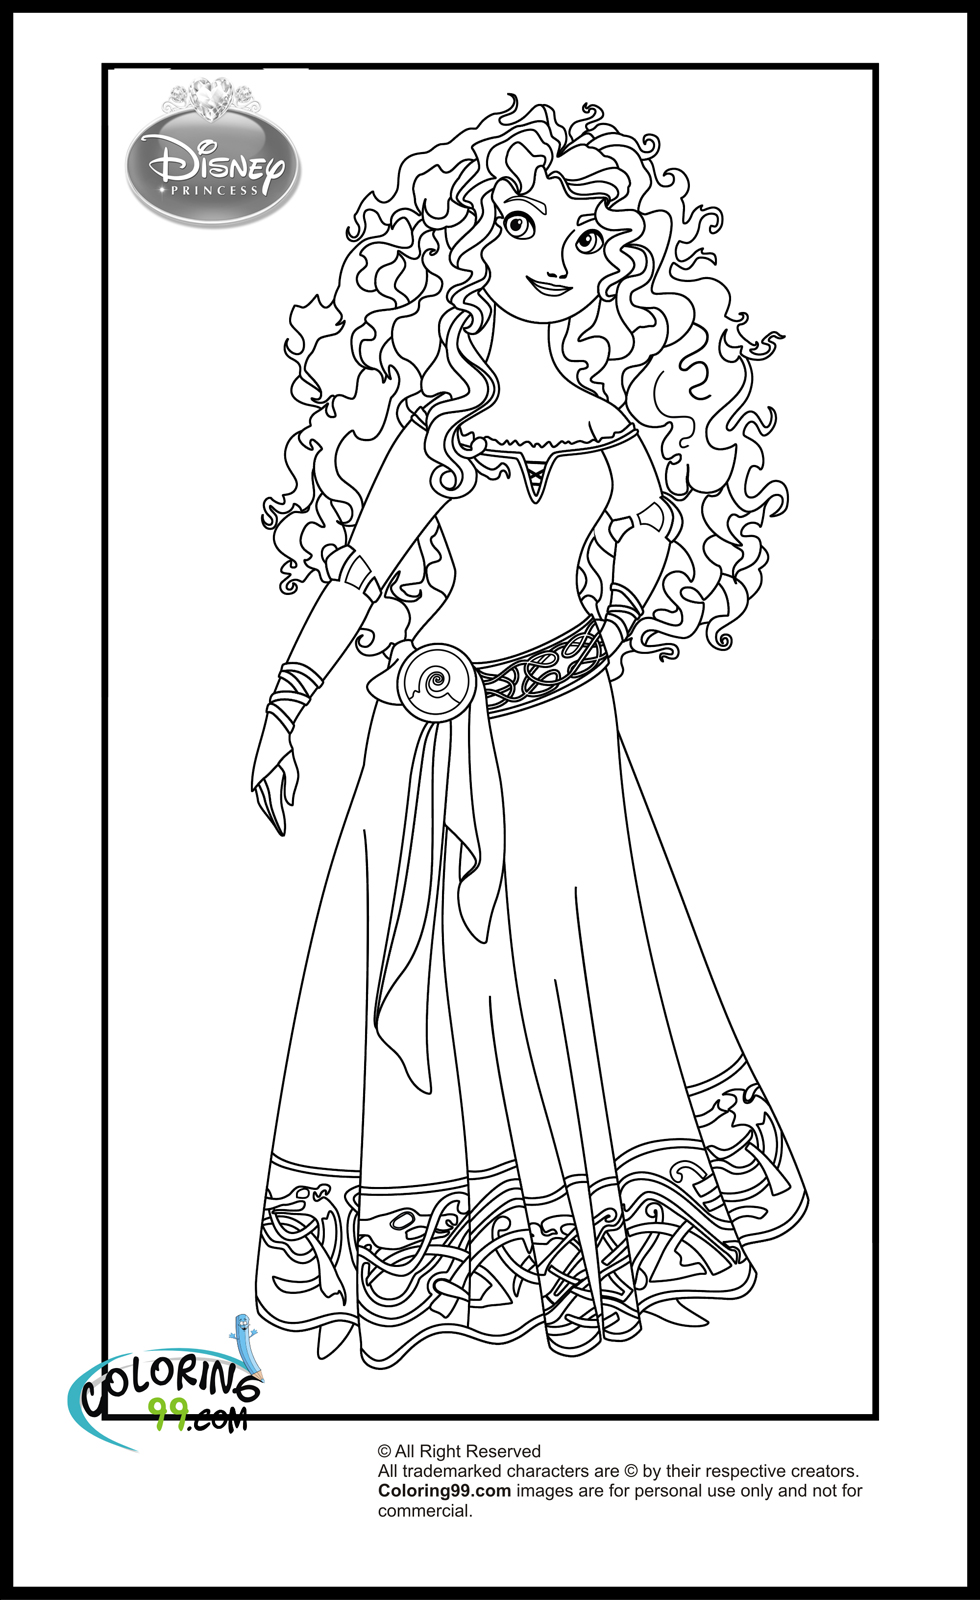 coloring page disney princess princess belle in her beautiful gown on disney princesses coloring page disney princess